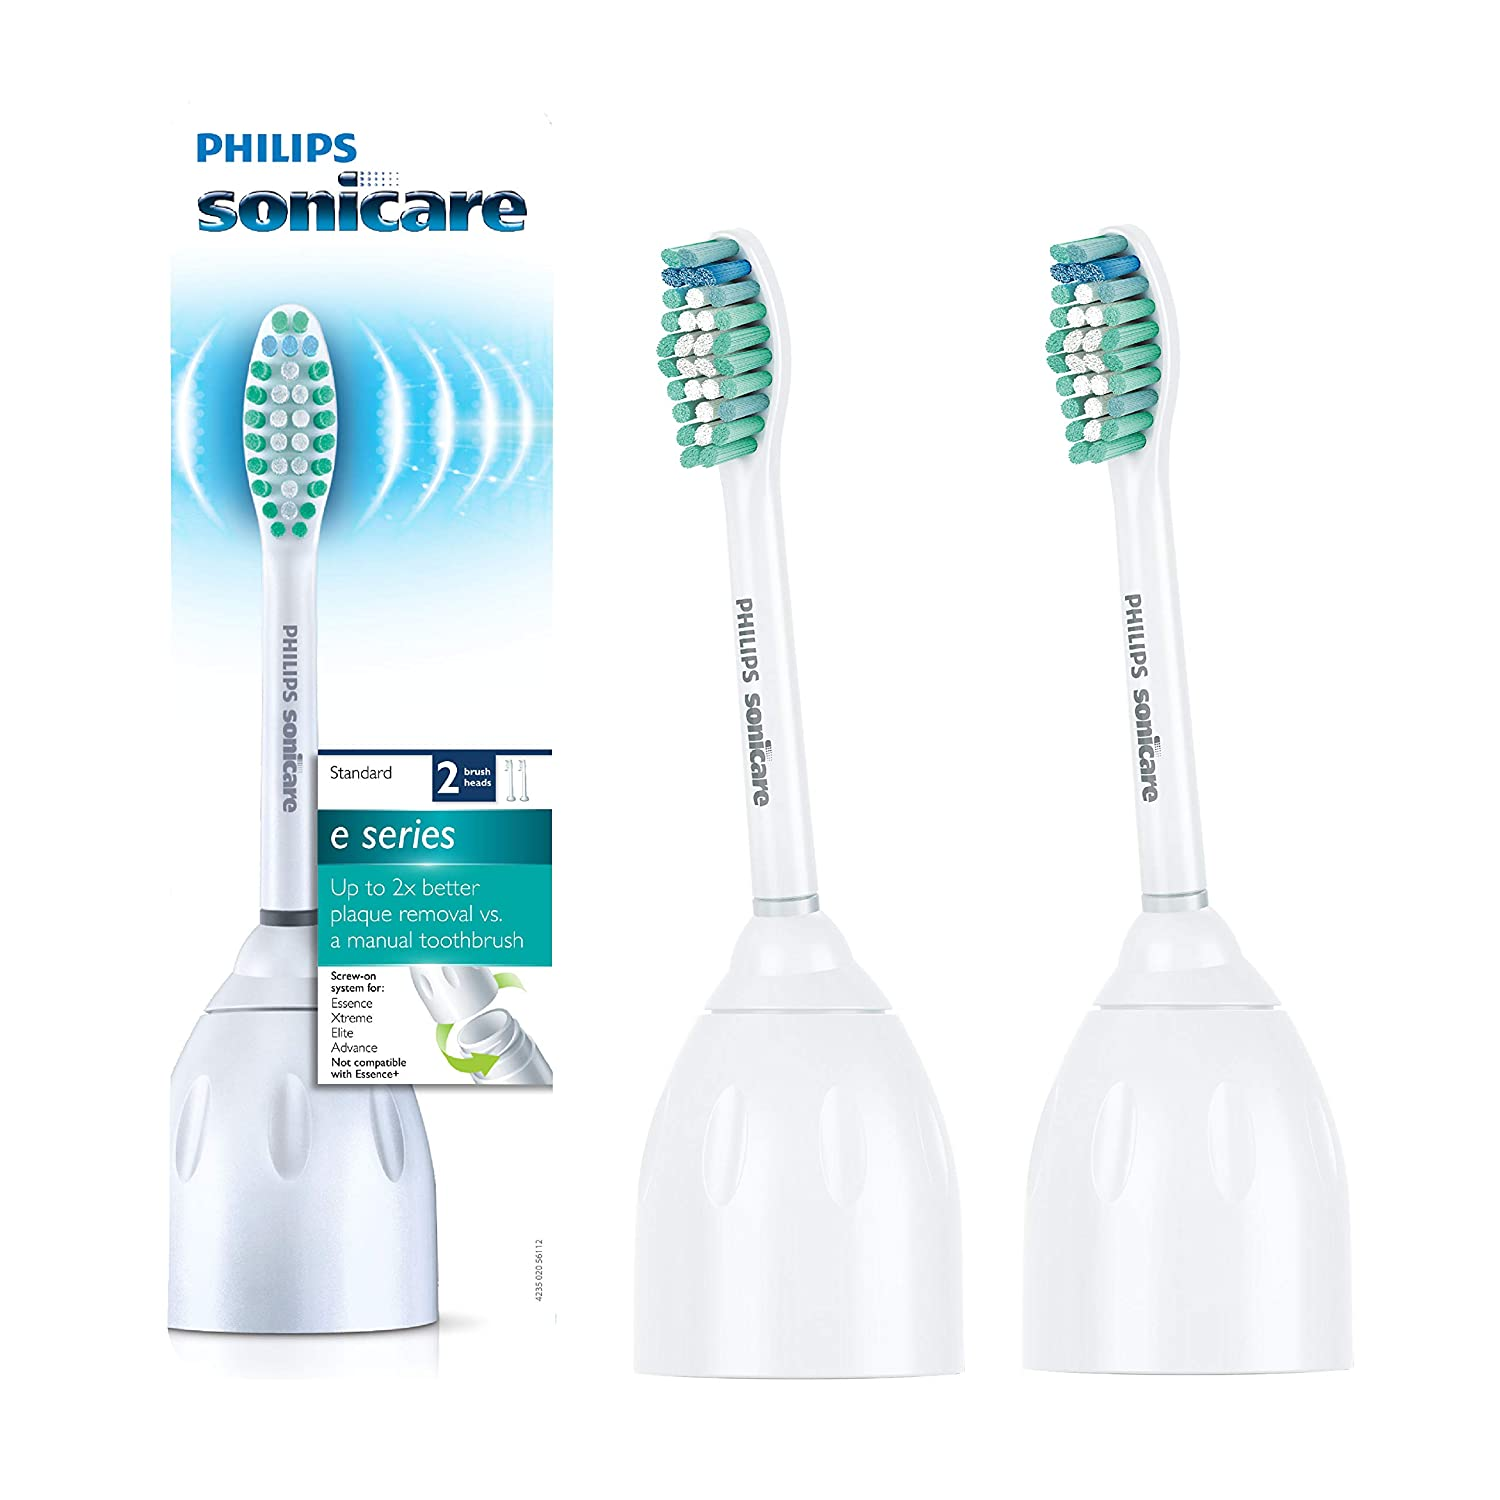 Philips Sonicare E Series Replacement Toothbrush Heads HX7022 66